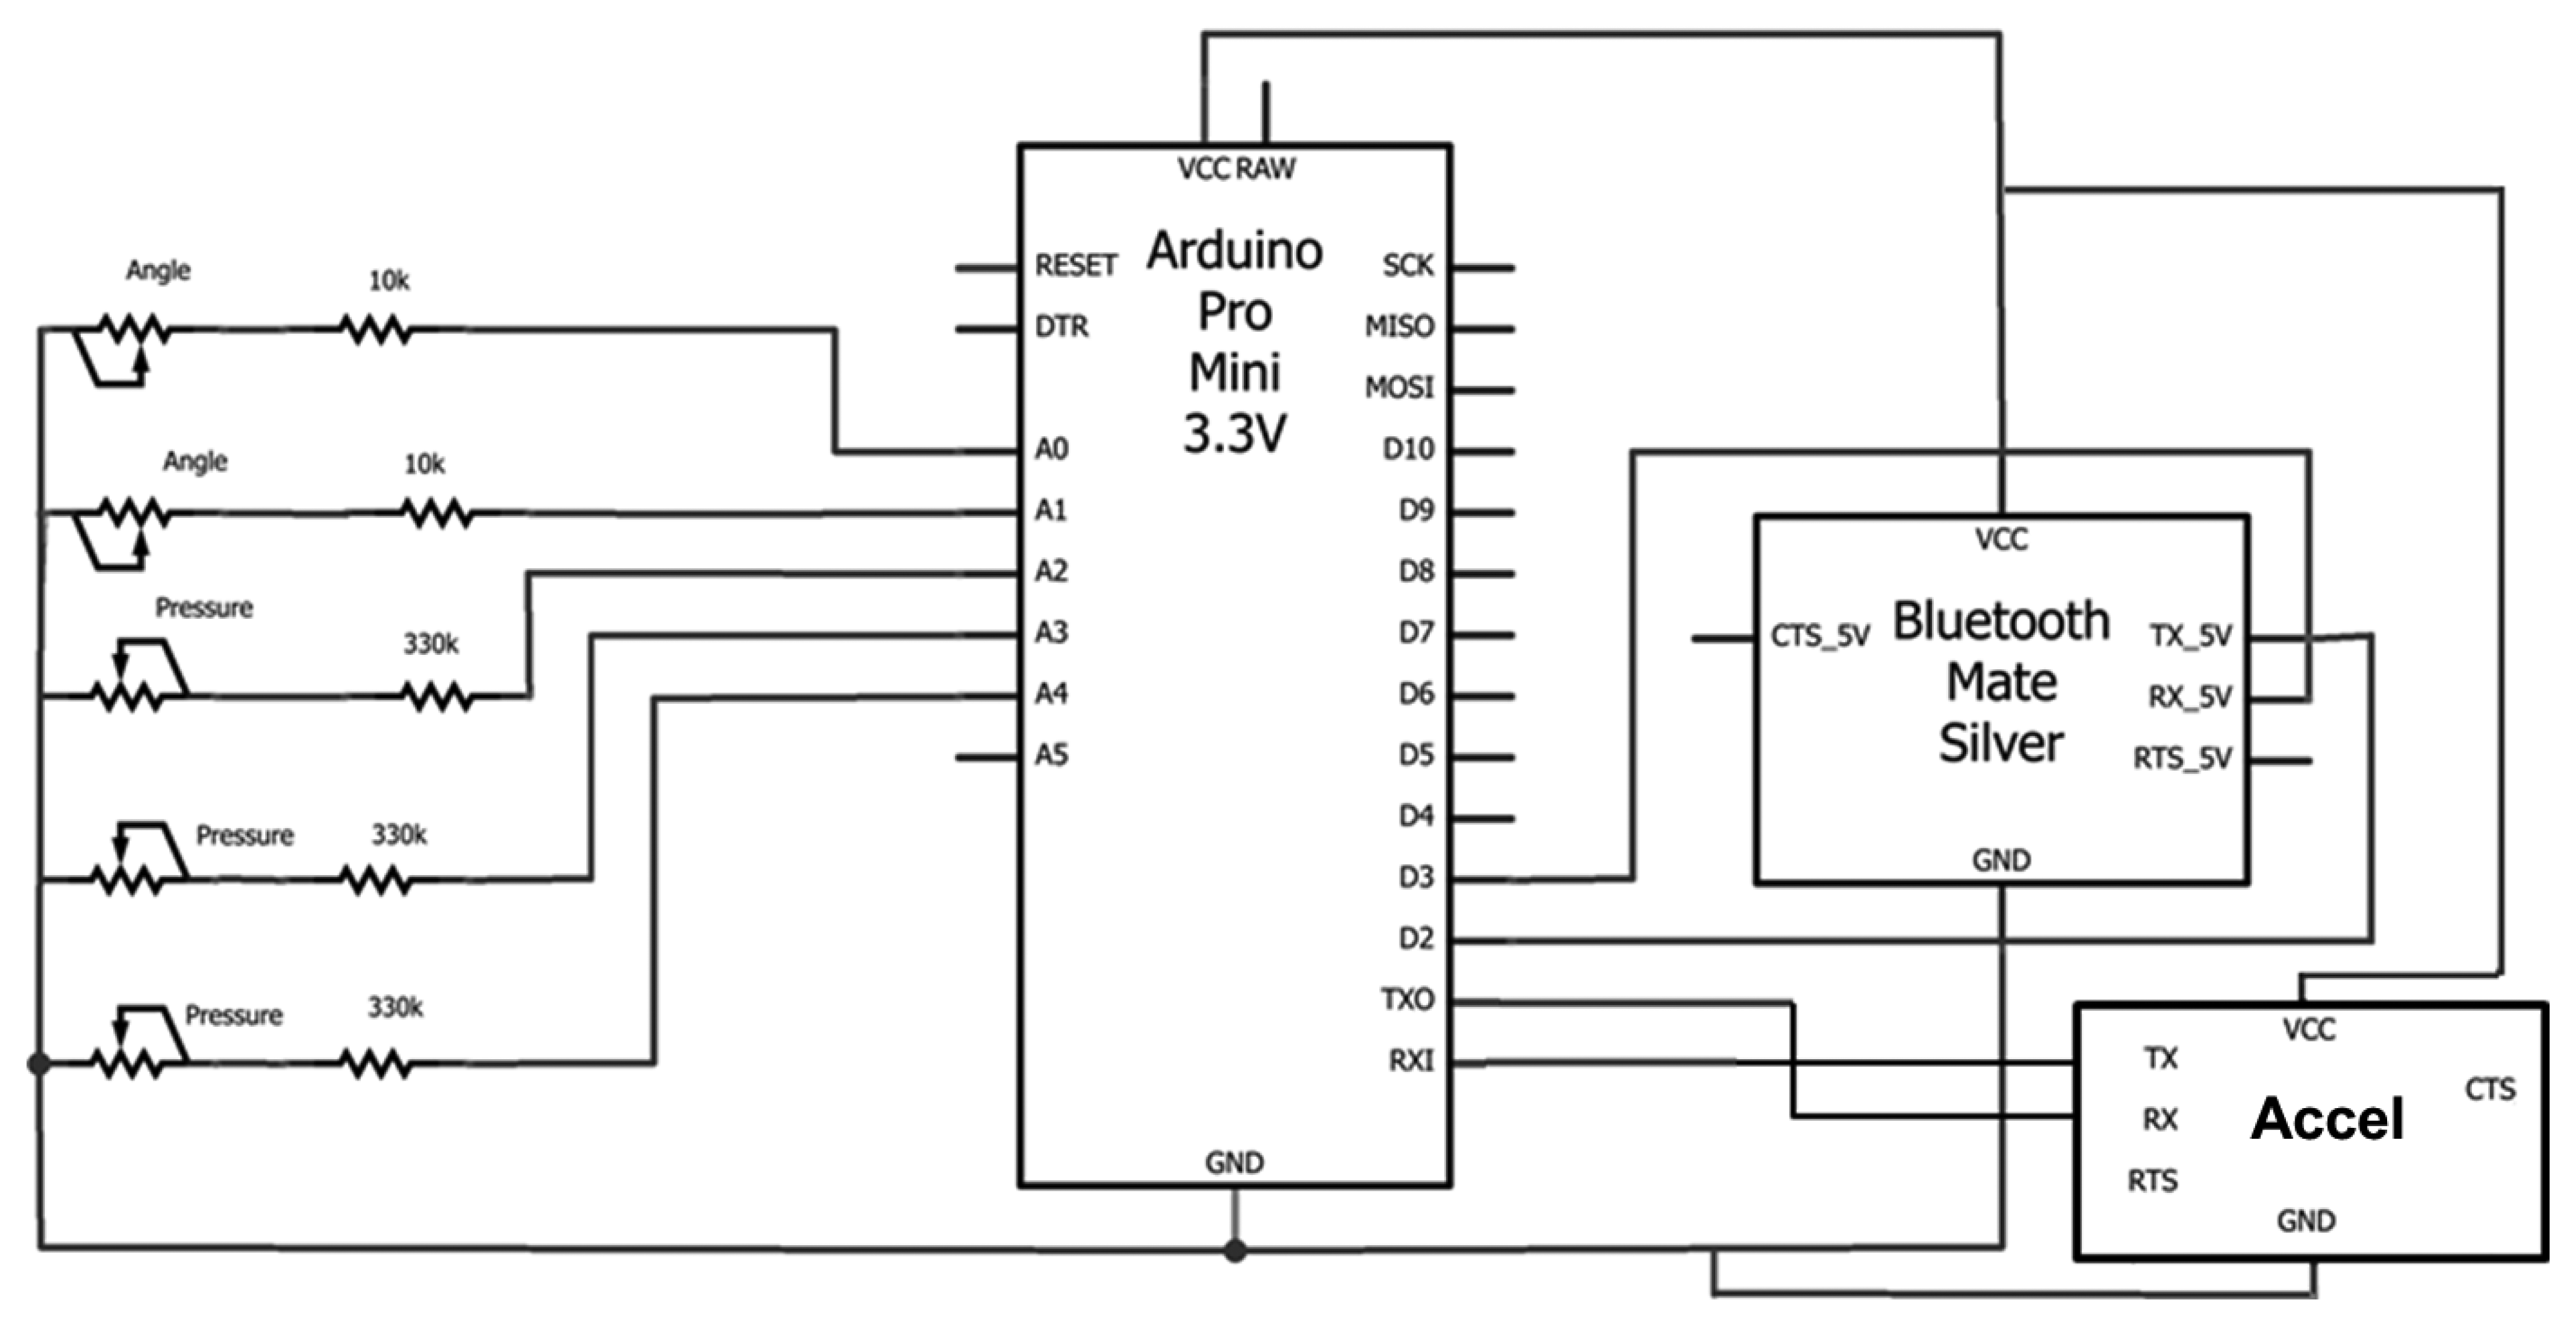 Sensors Free Full Text Wireless Prototype Based On Pressure And Digital Thermometer Using Arduino Electronic Circuits Diagram 13 09679f7 1024